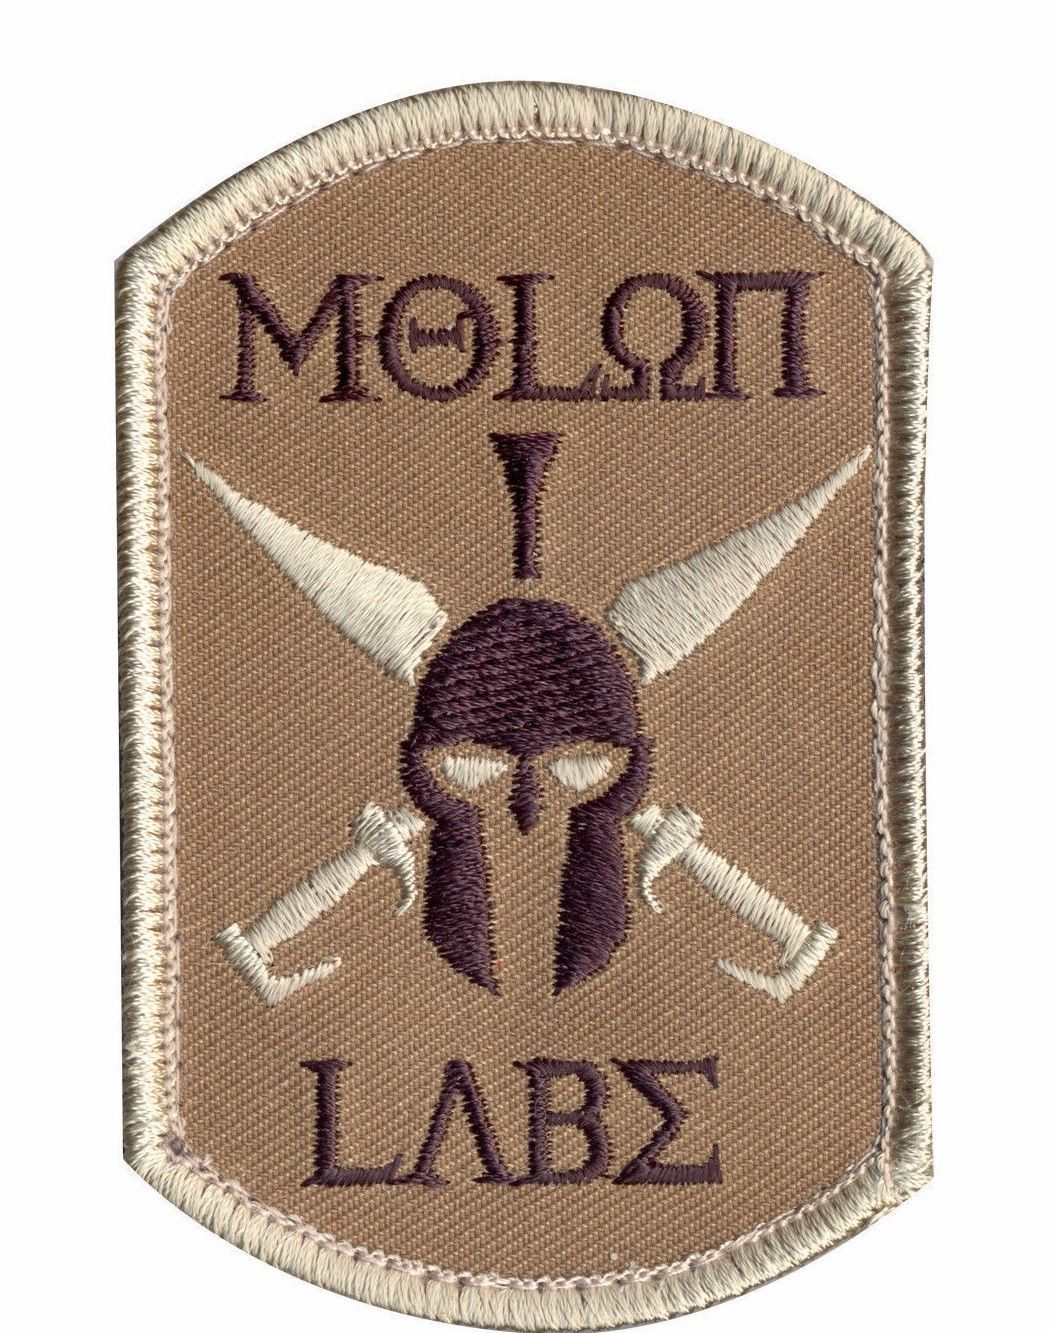 Primary image for MILITARY TACTICAL PATCH MOLON LABE HOOK & LOOP EMBROIDERED PATCH